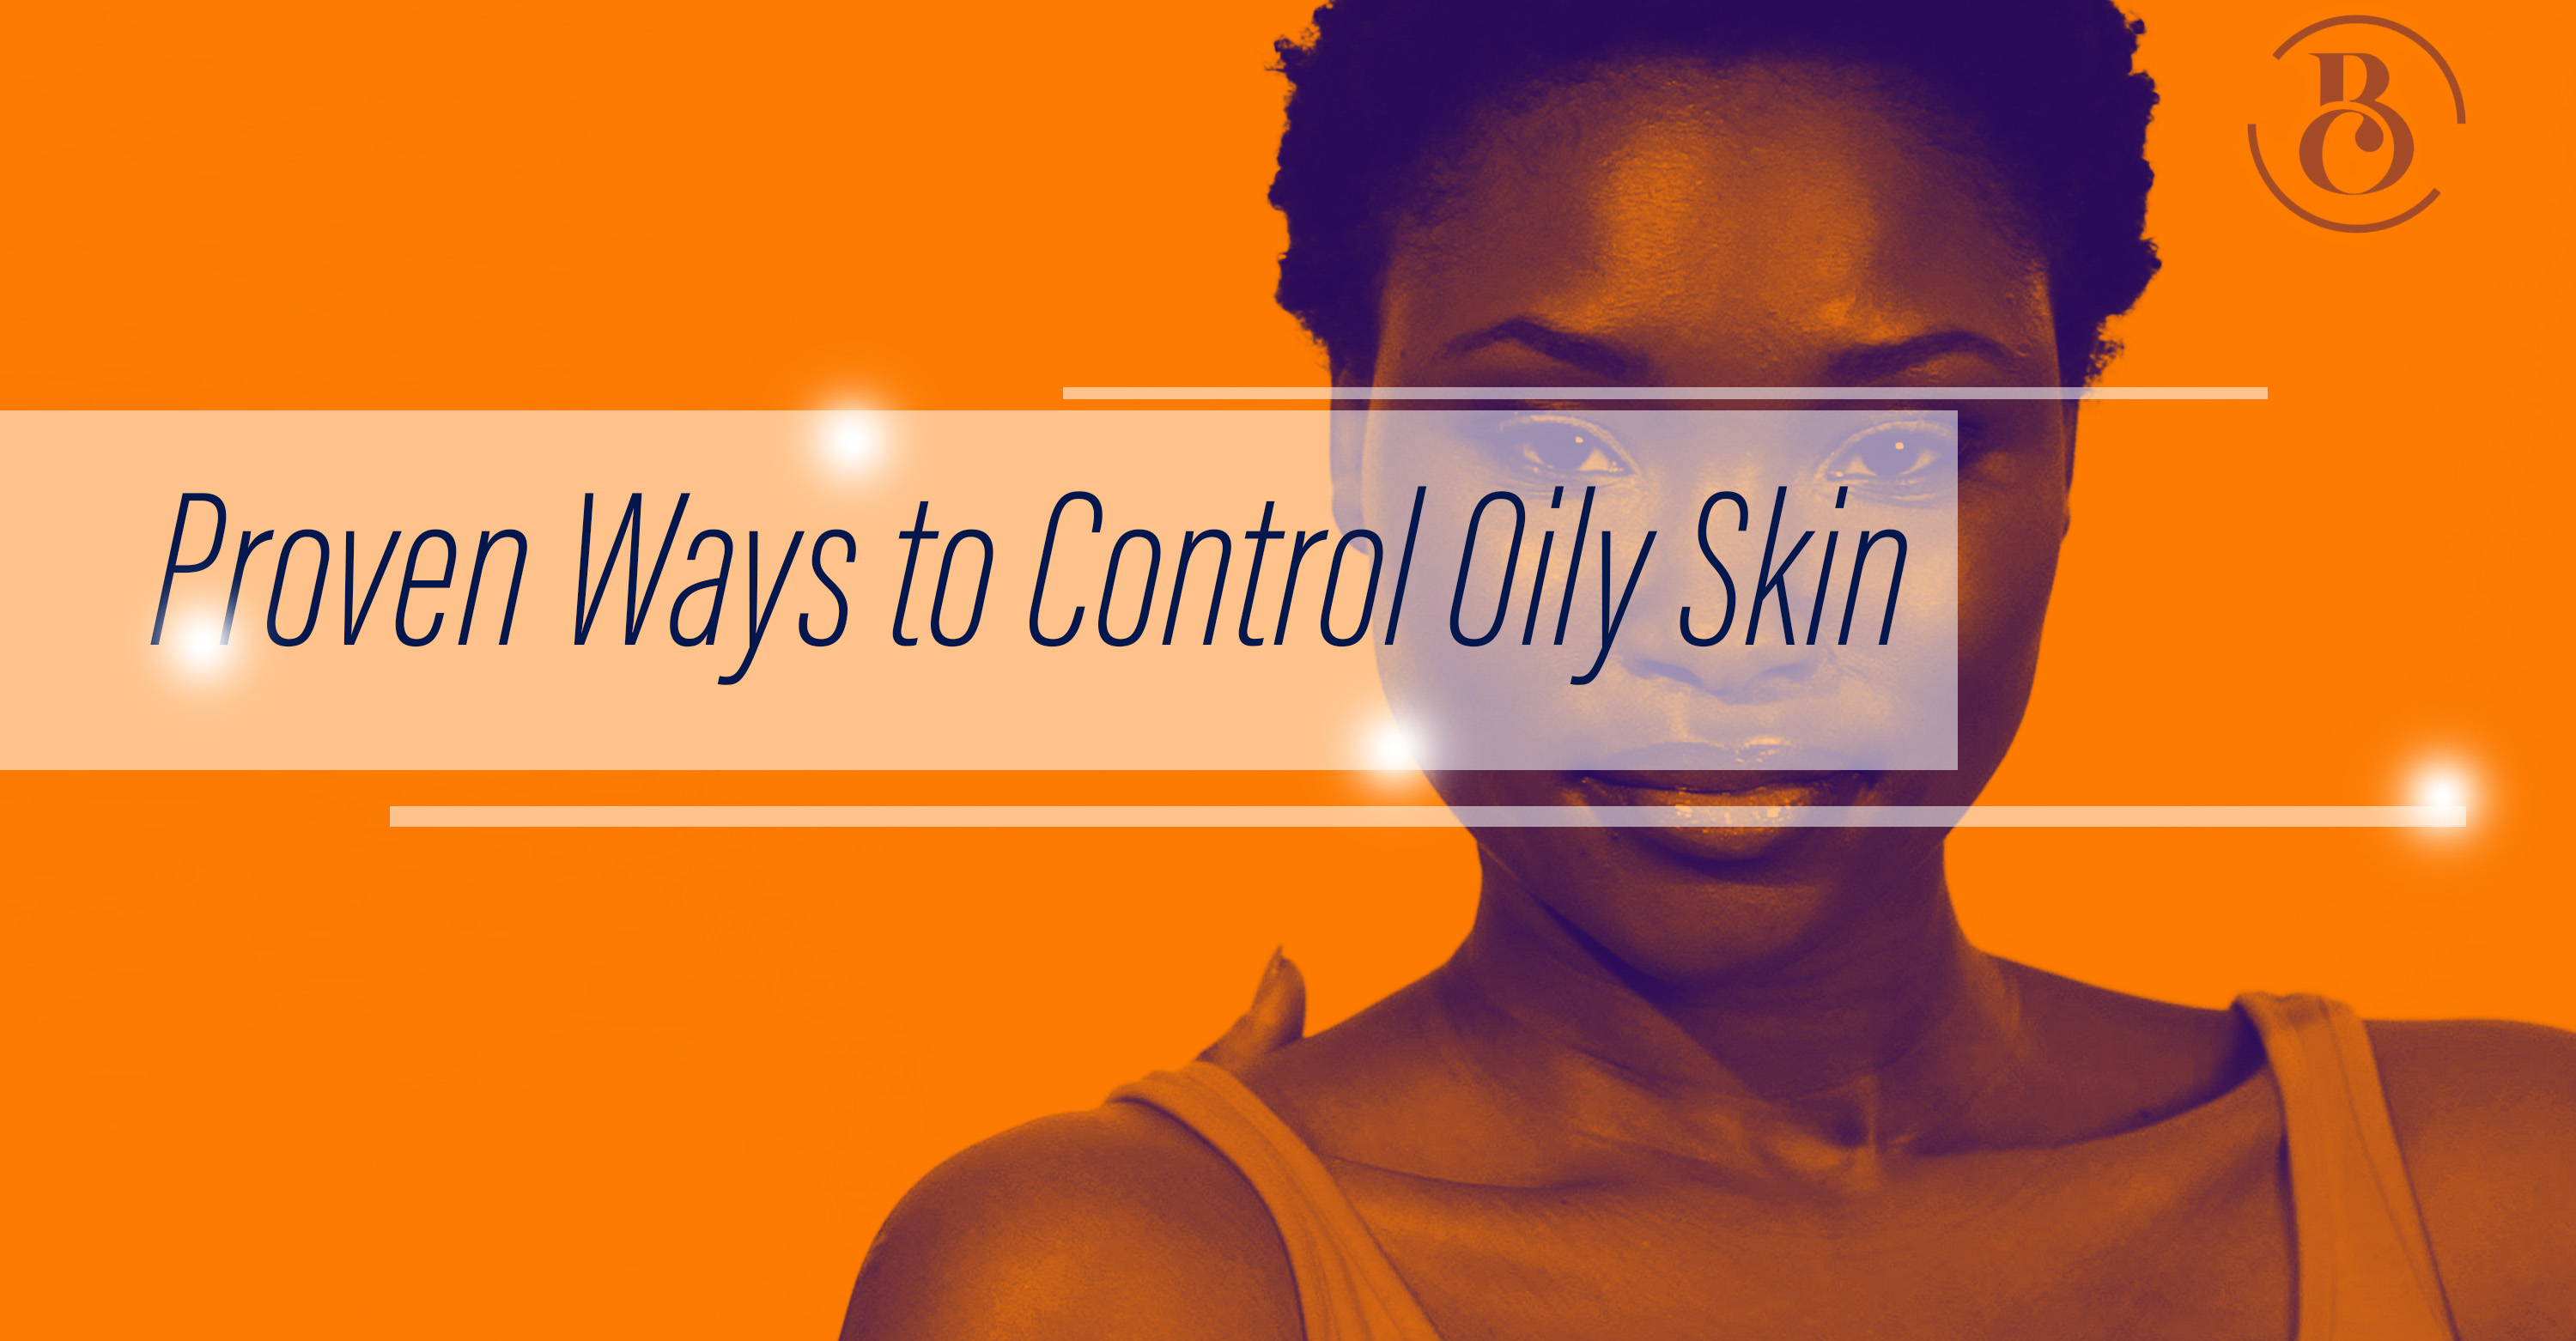 9 Proven Ways to Control Oily Skin